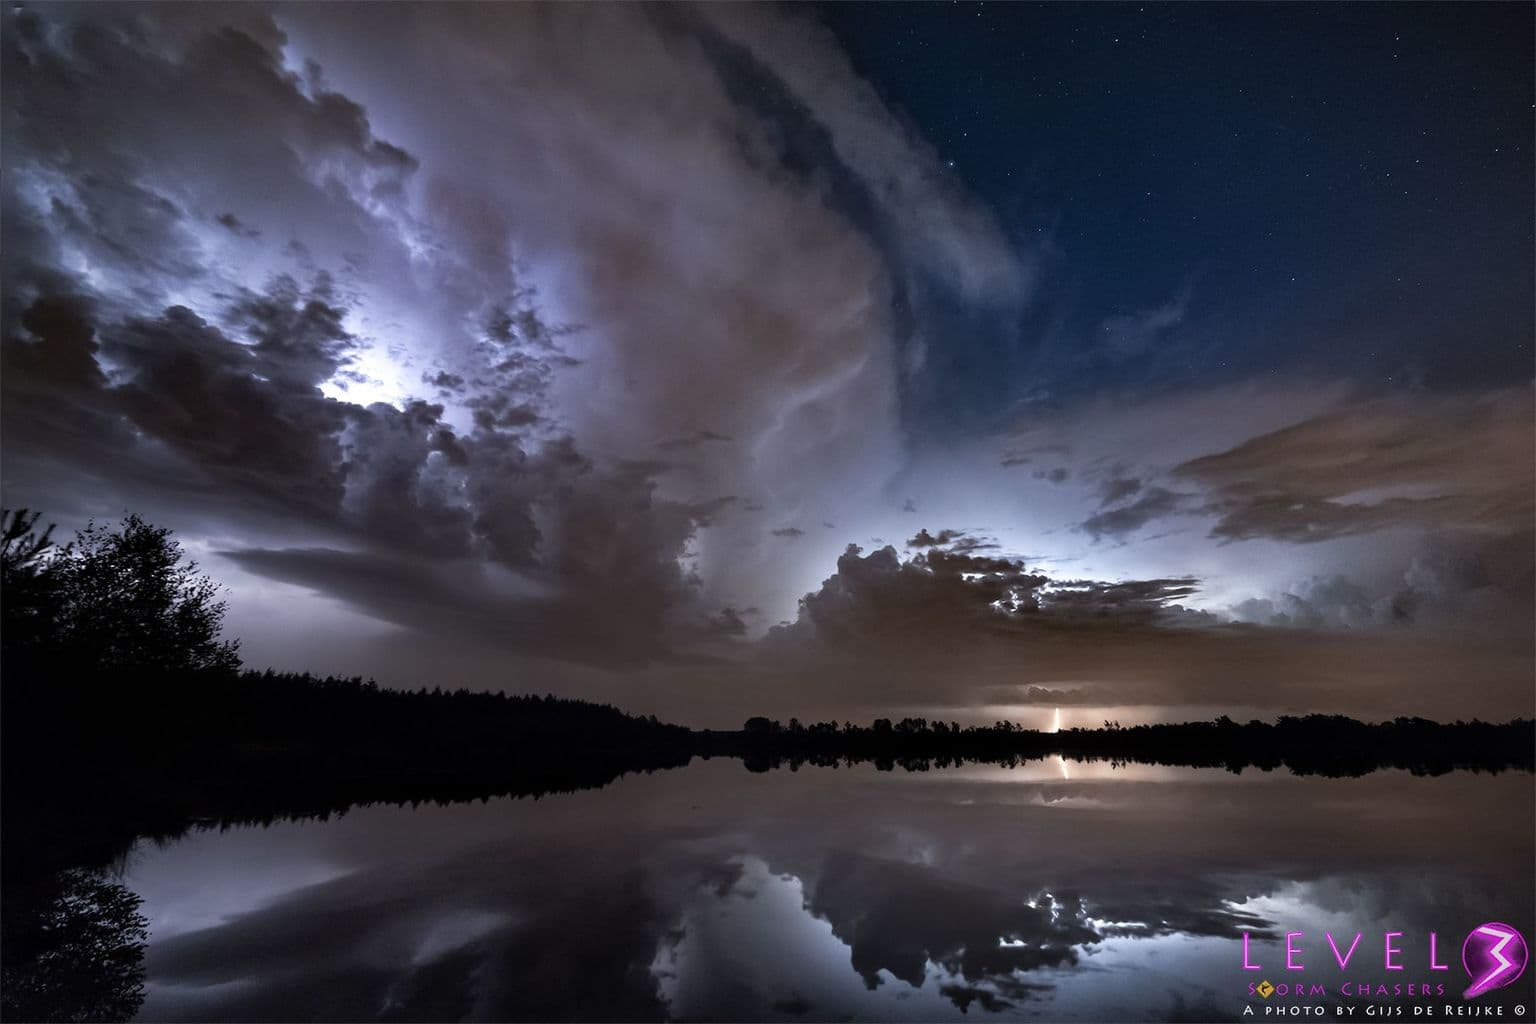 Two cells photographed with a 14mm lens on August 27 of last year near the Dutch town of Weert in the Netherlands.